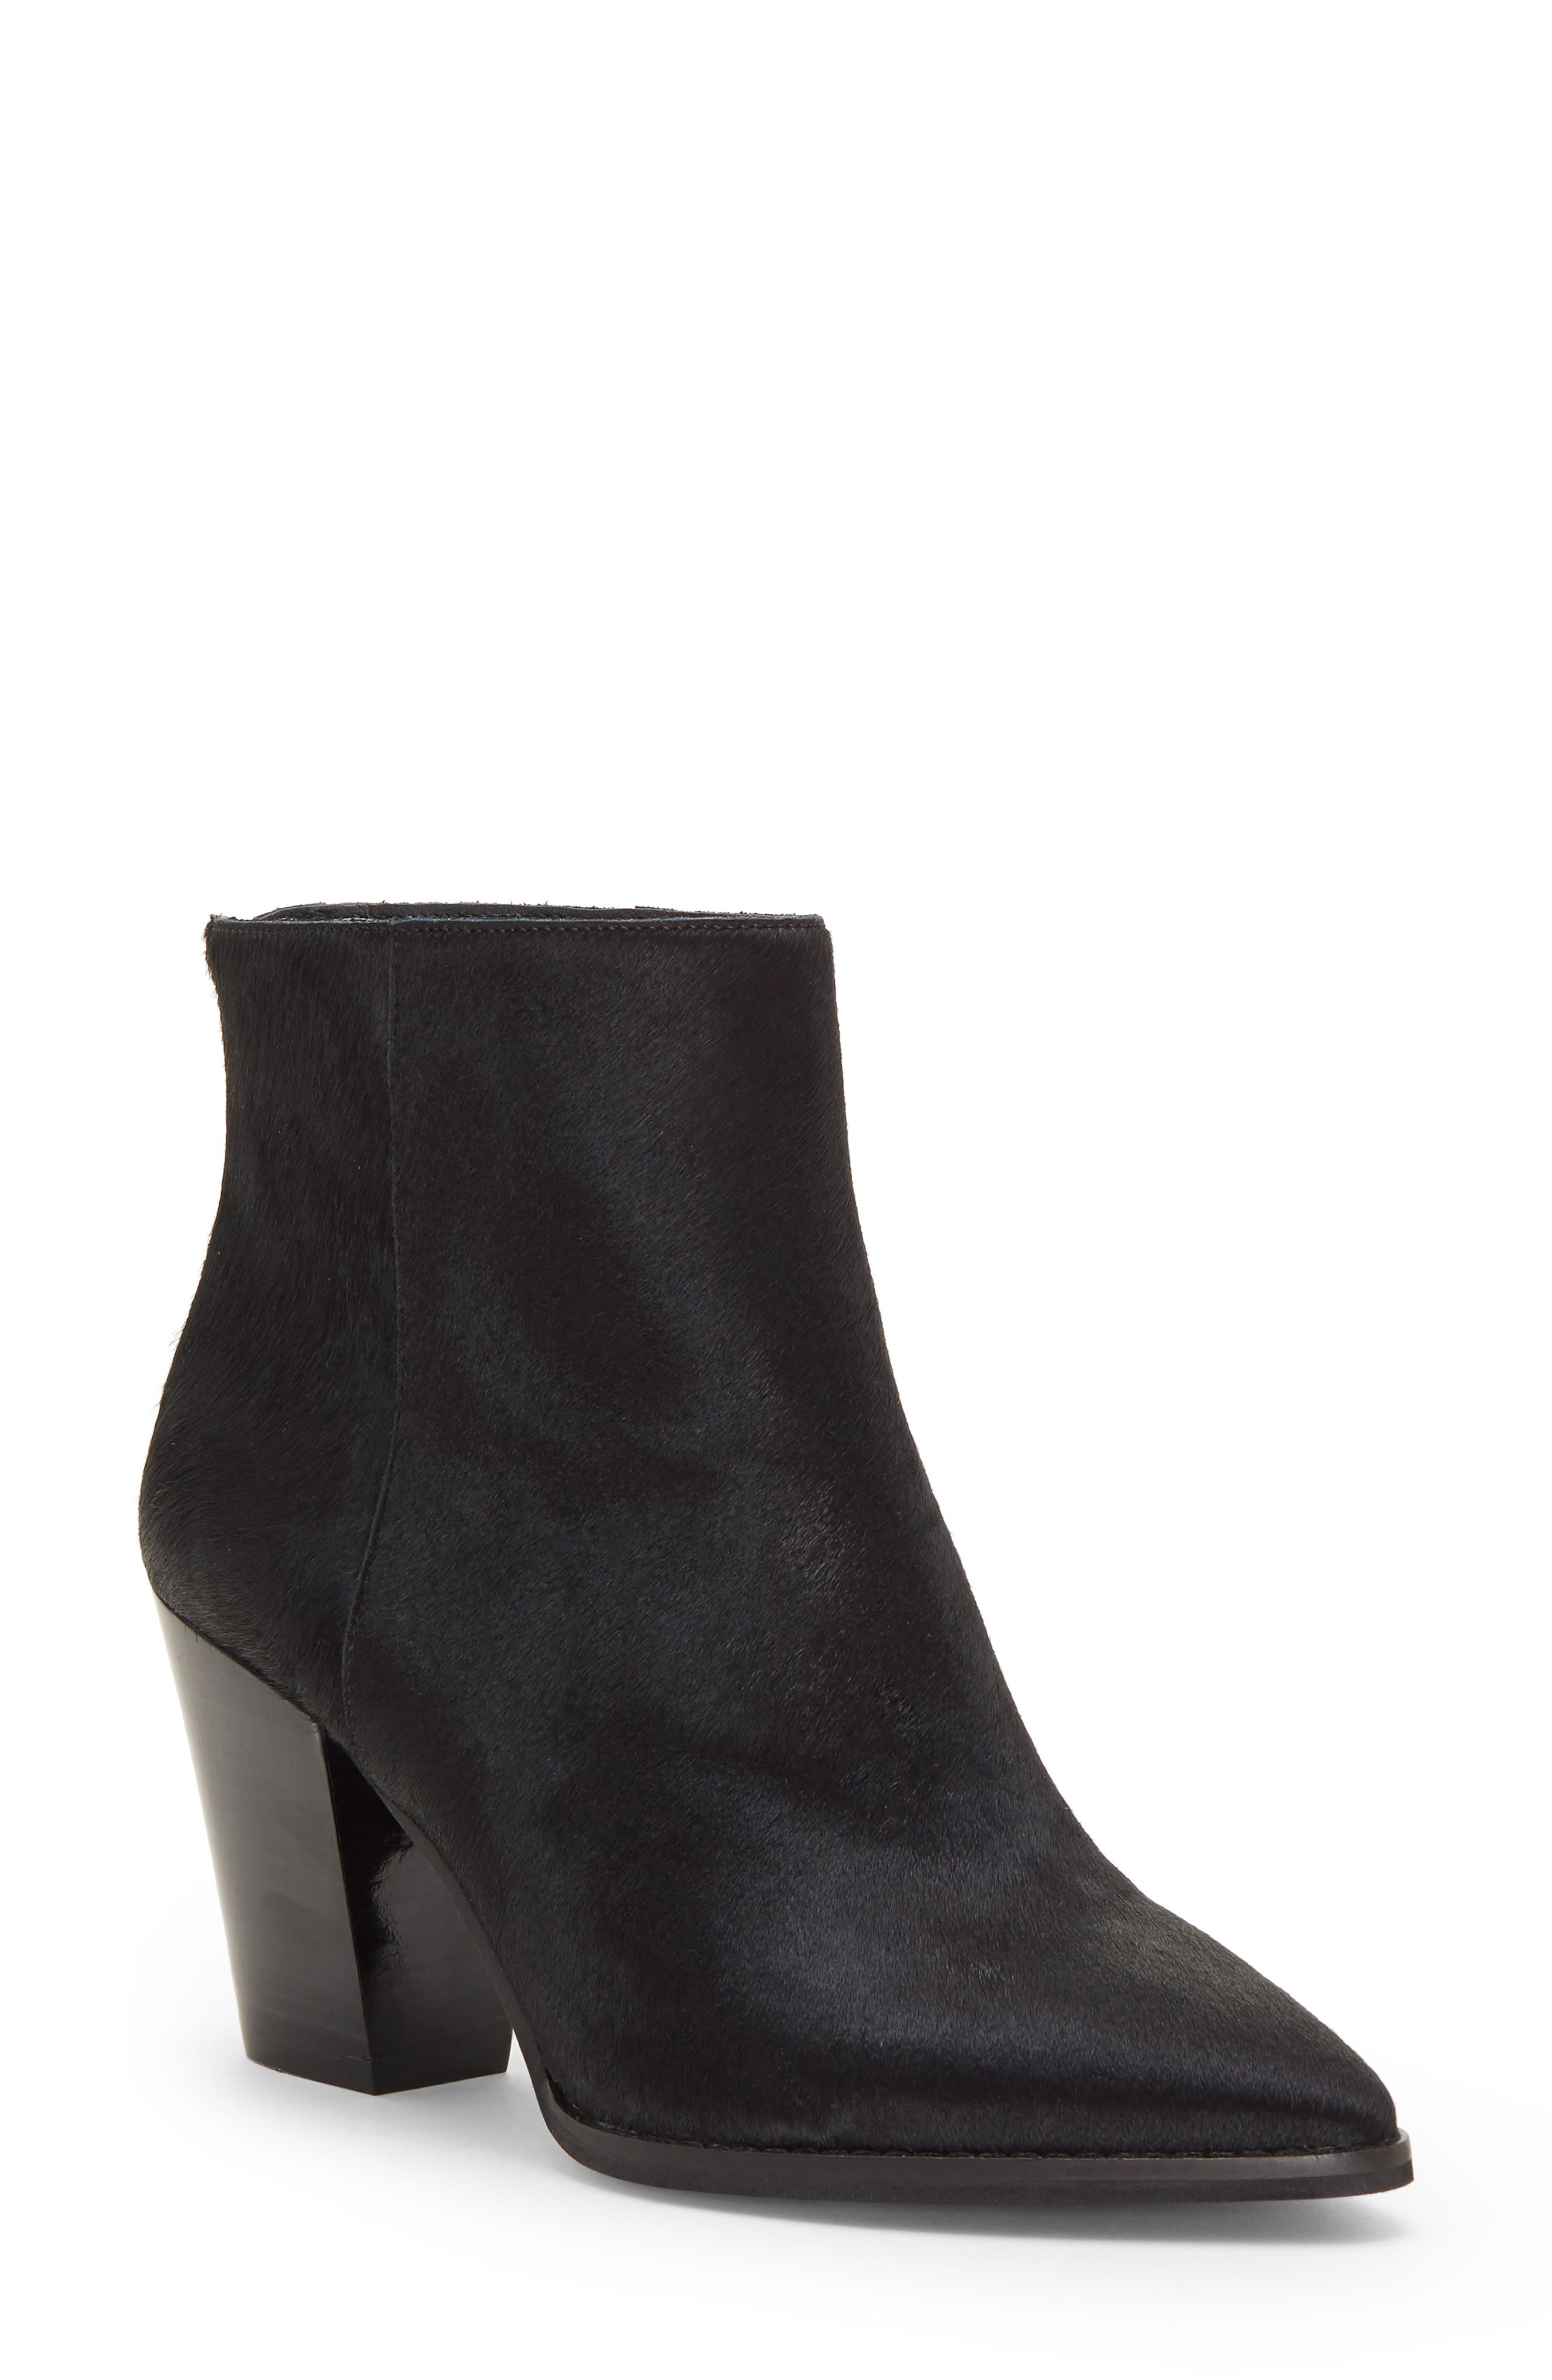 Lucky Brand Adalan Ii Genuine Calf Hair Bootie- Black